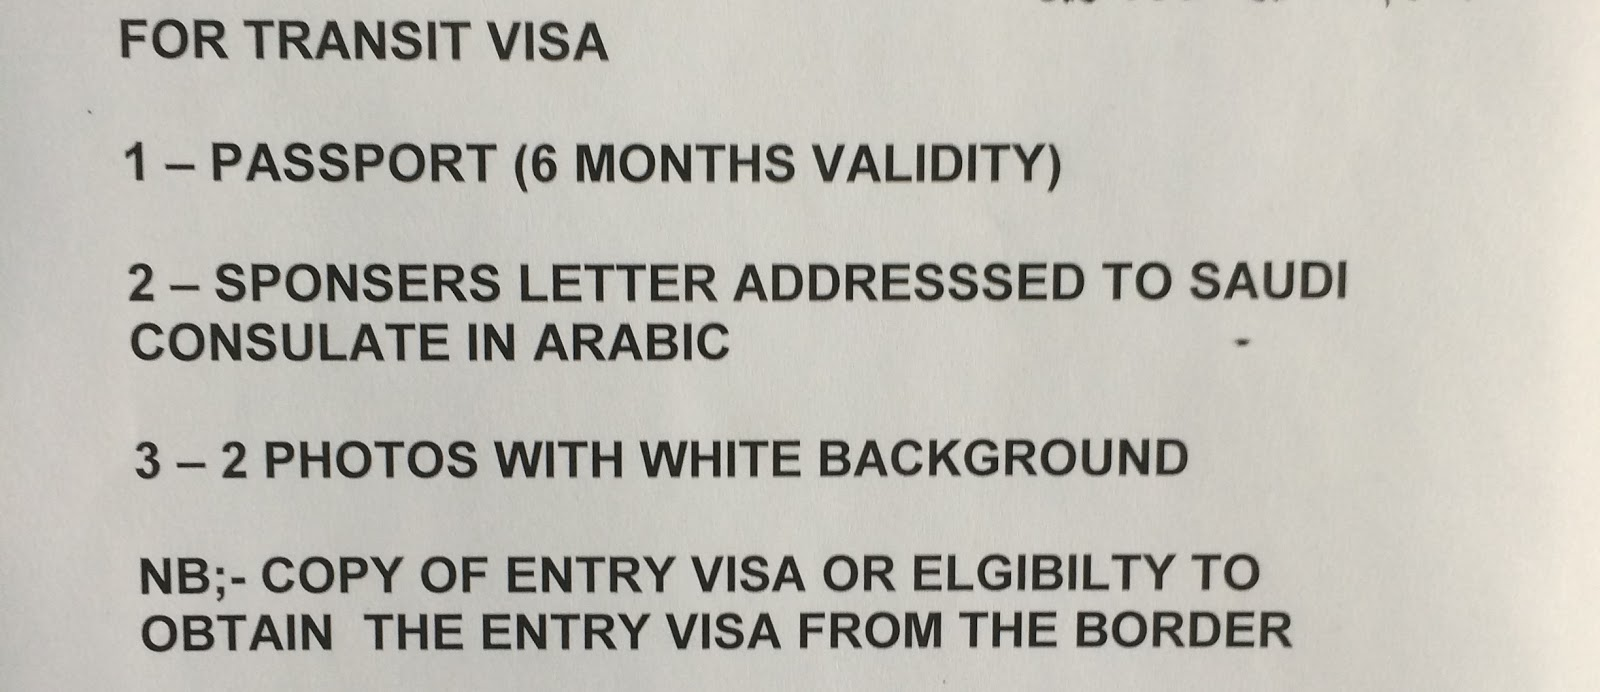 Skeptic in qatar saudi transit visa and the fee of course the photos that they refer to are passport sized photos i believe that the last item refers to proof that you have a visa to enter altavistaventures Image collections